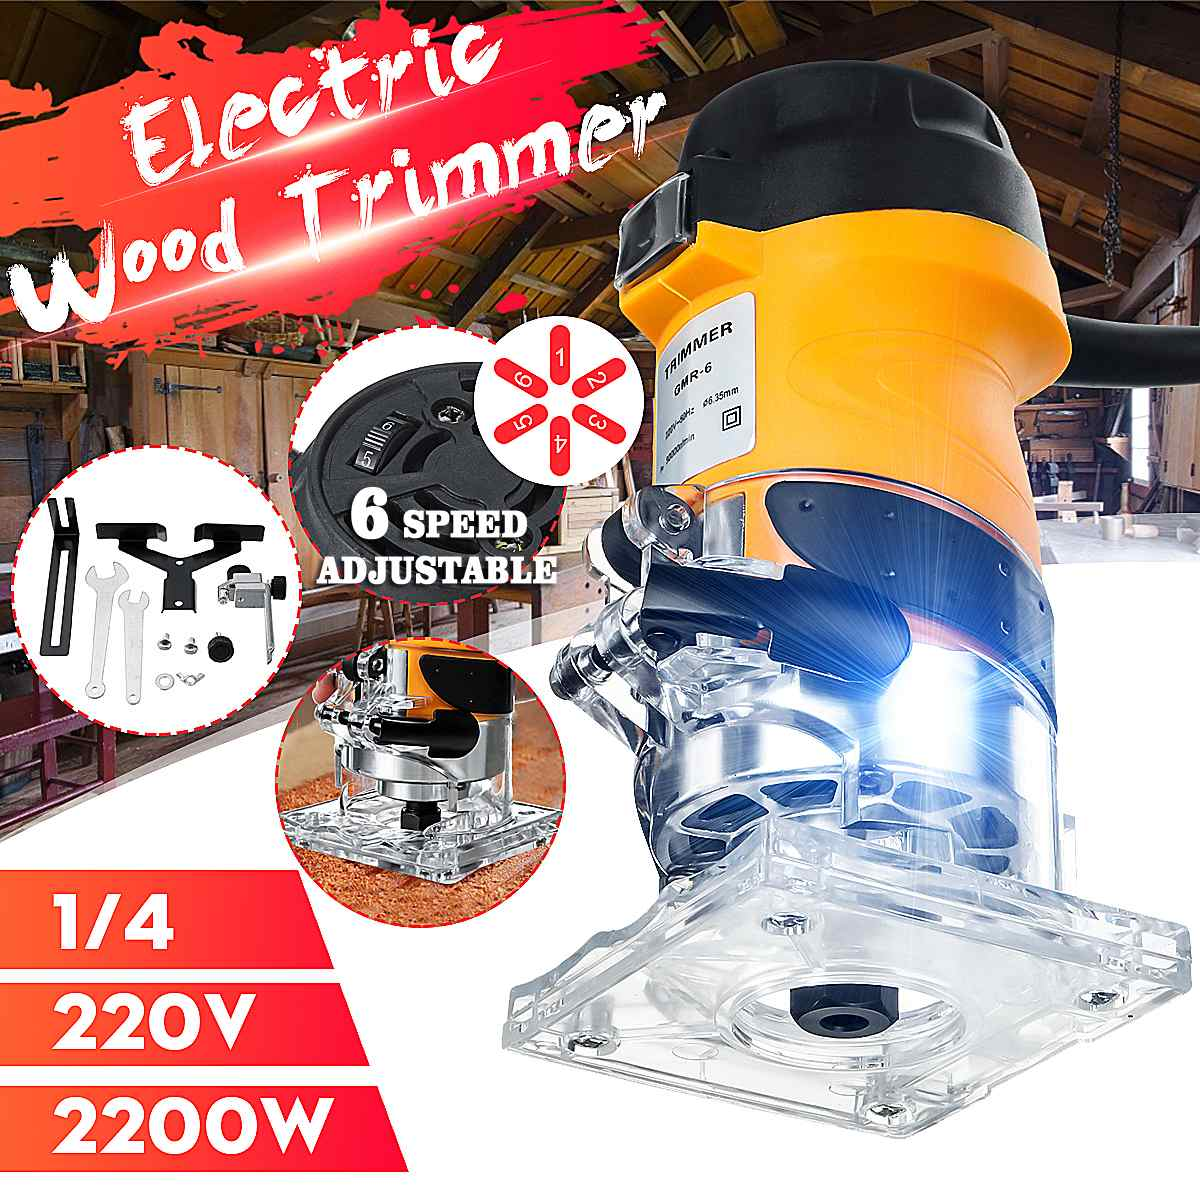 2200W 33000RPM Woodworking Electric Trimmer Wood Laminate Router 6.35mm Electric Hand Carving Machine Woodworking DIY Tools